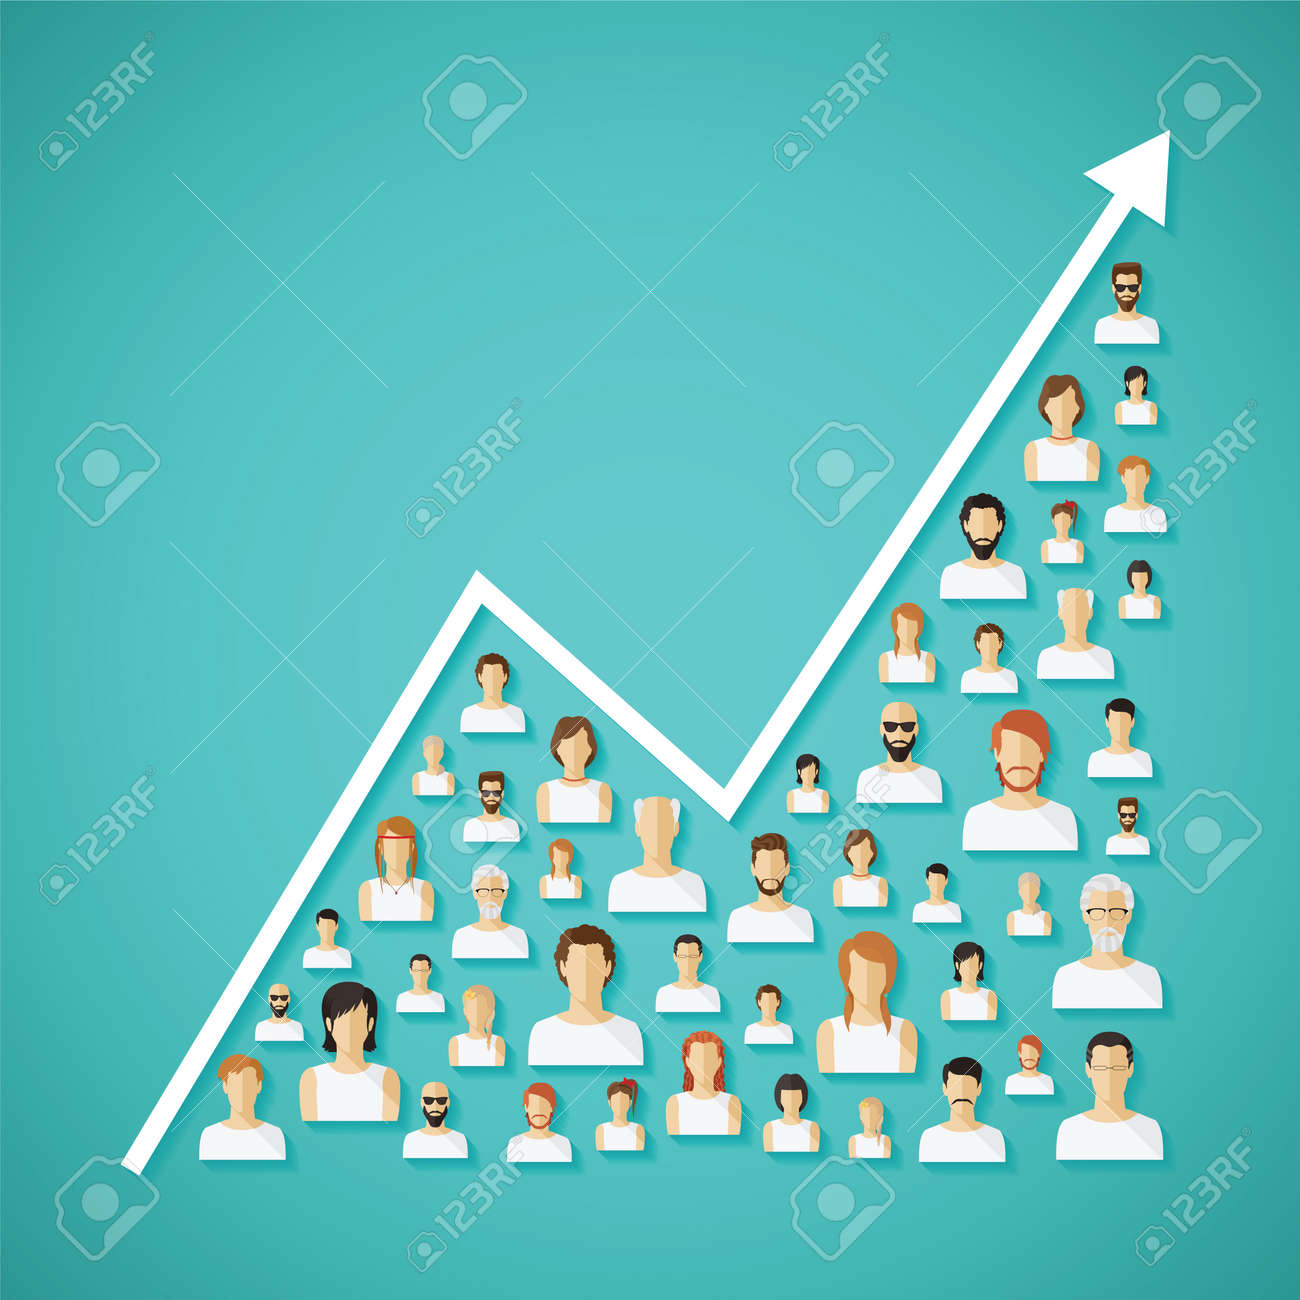 Vector social network population and demography growh concept with flat human icons. - 30139299